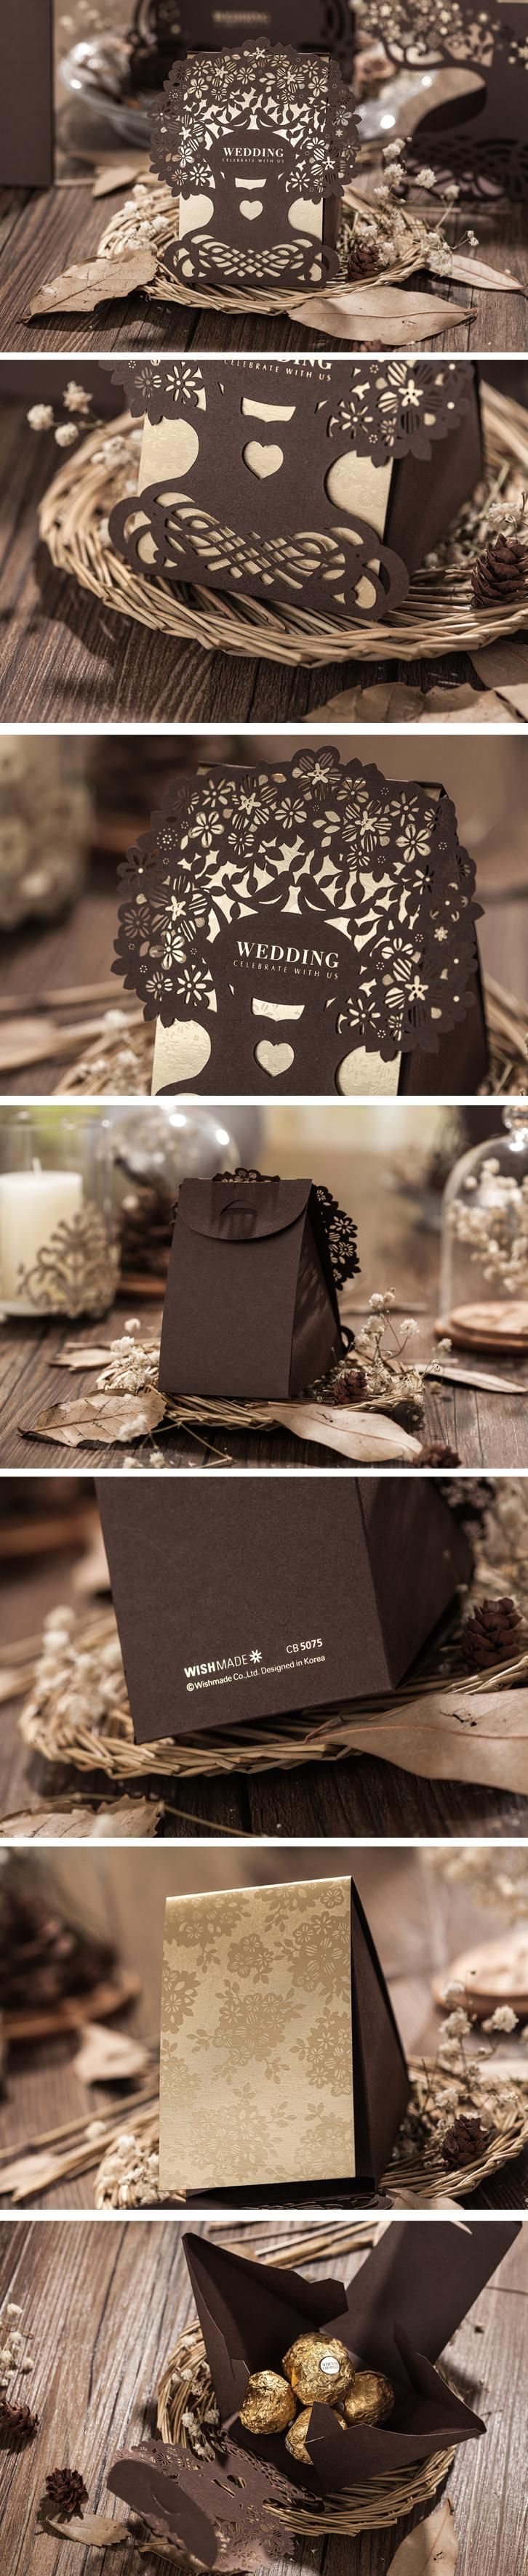 Best 25 Wedding Candy Boxes Ideas On Pinterest Wedding Favour